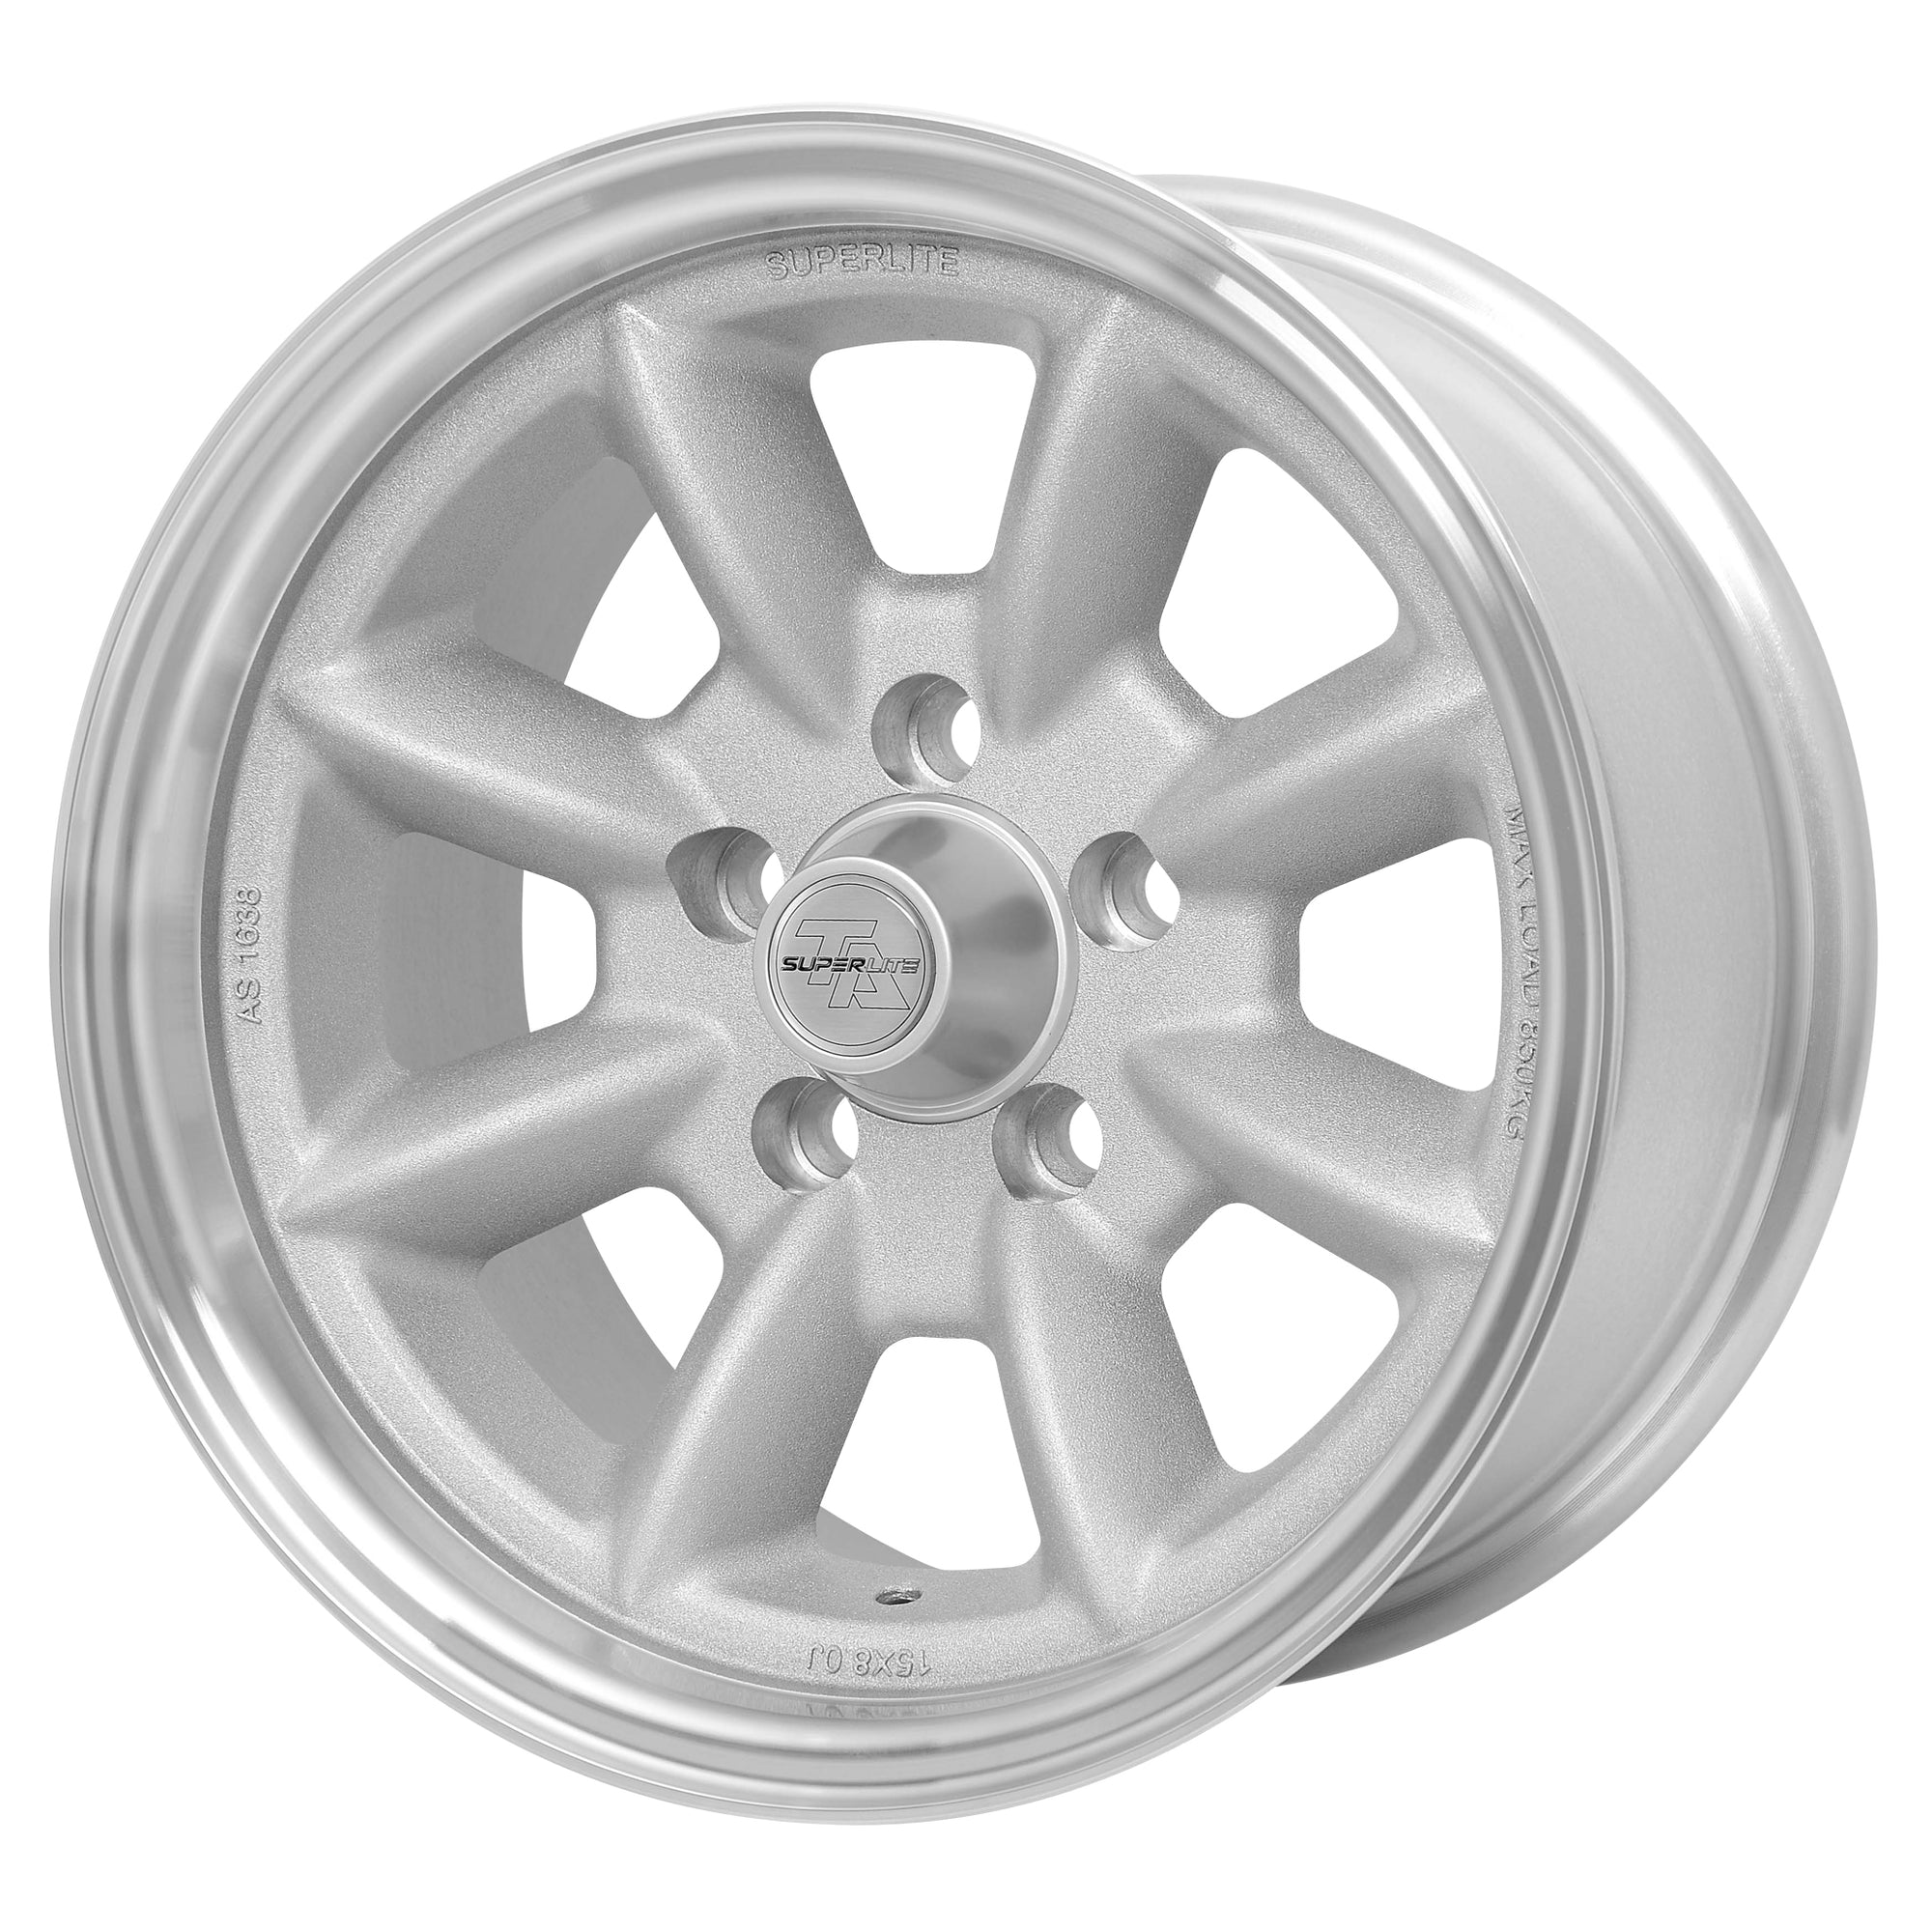 "Superlite 15x8 5x120.65 4.5"" Backspacing 73mm Centre Bore SPL158245"